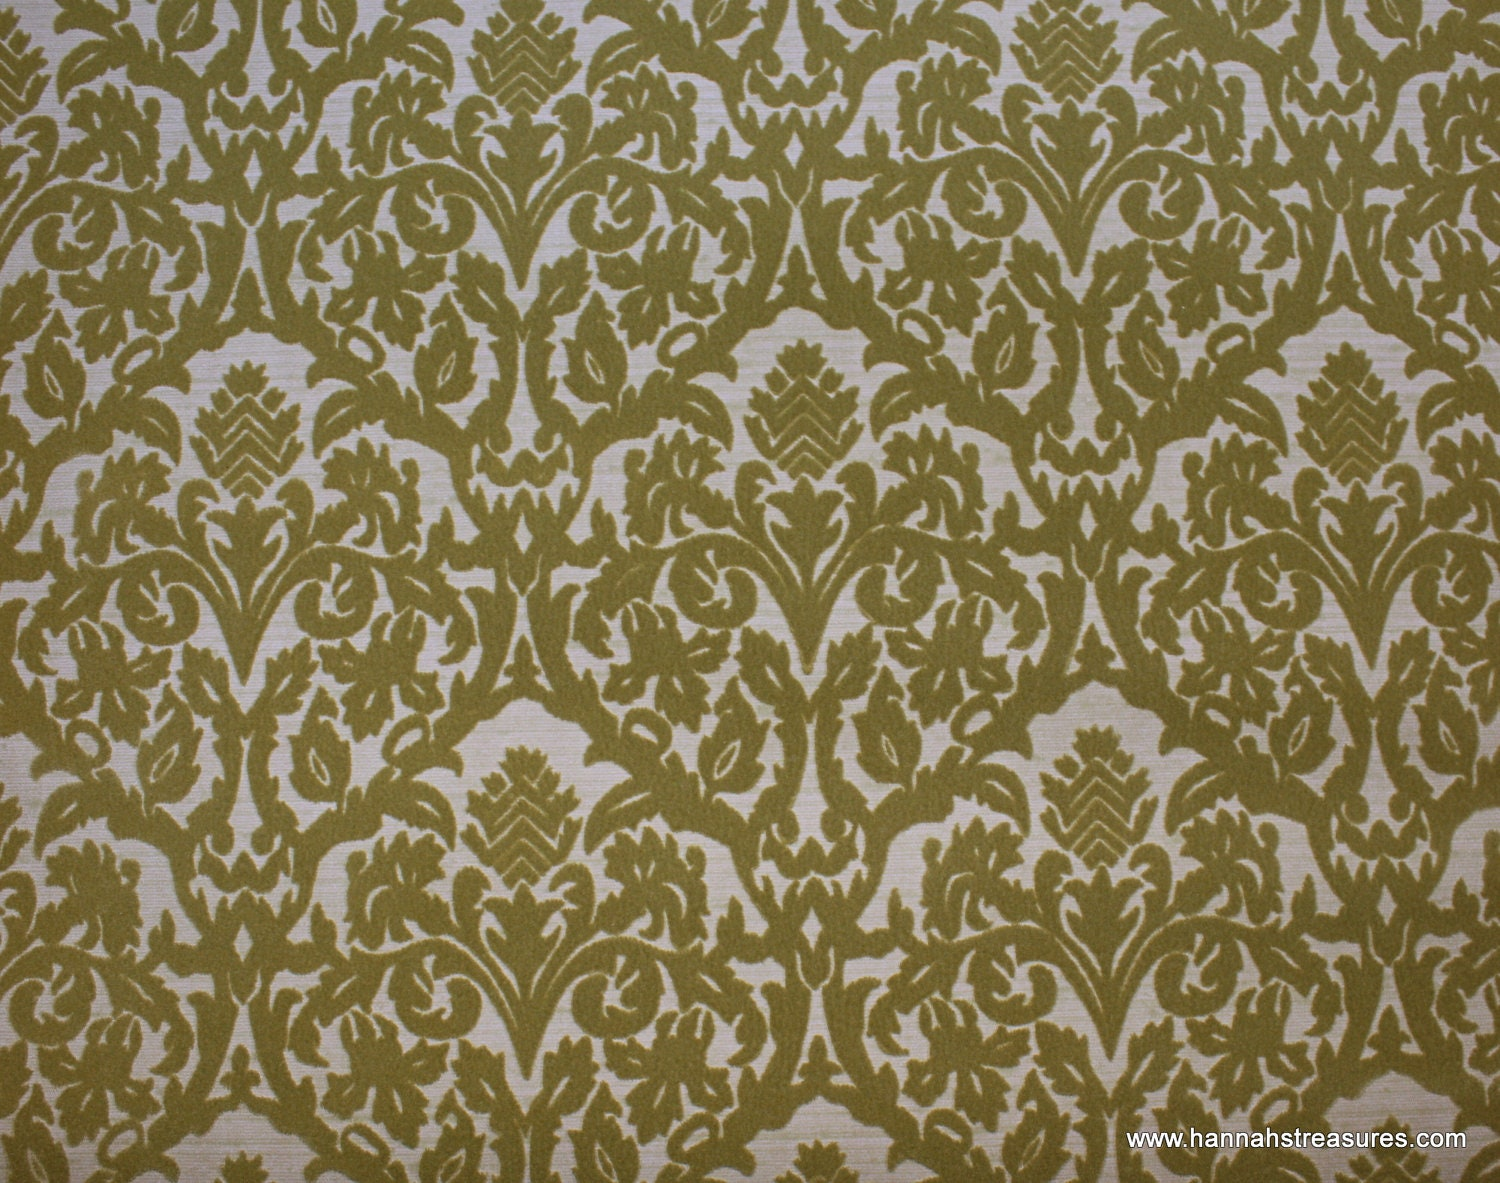 1970s vintage wallpaper retro - photo #36